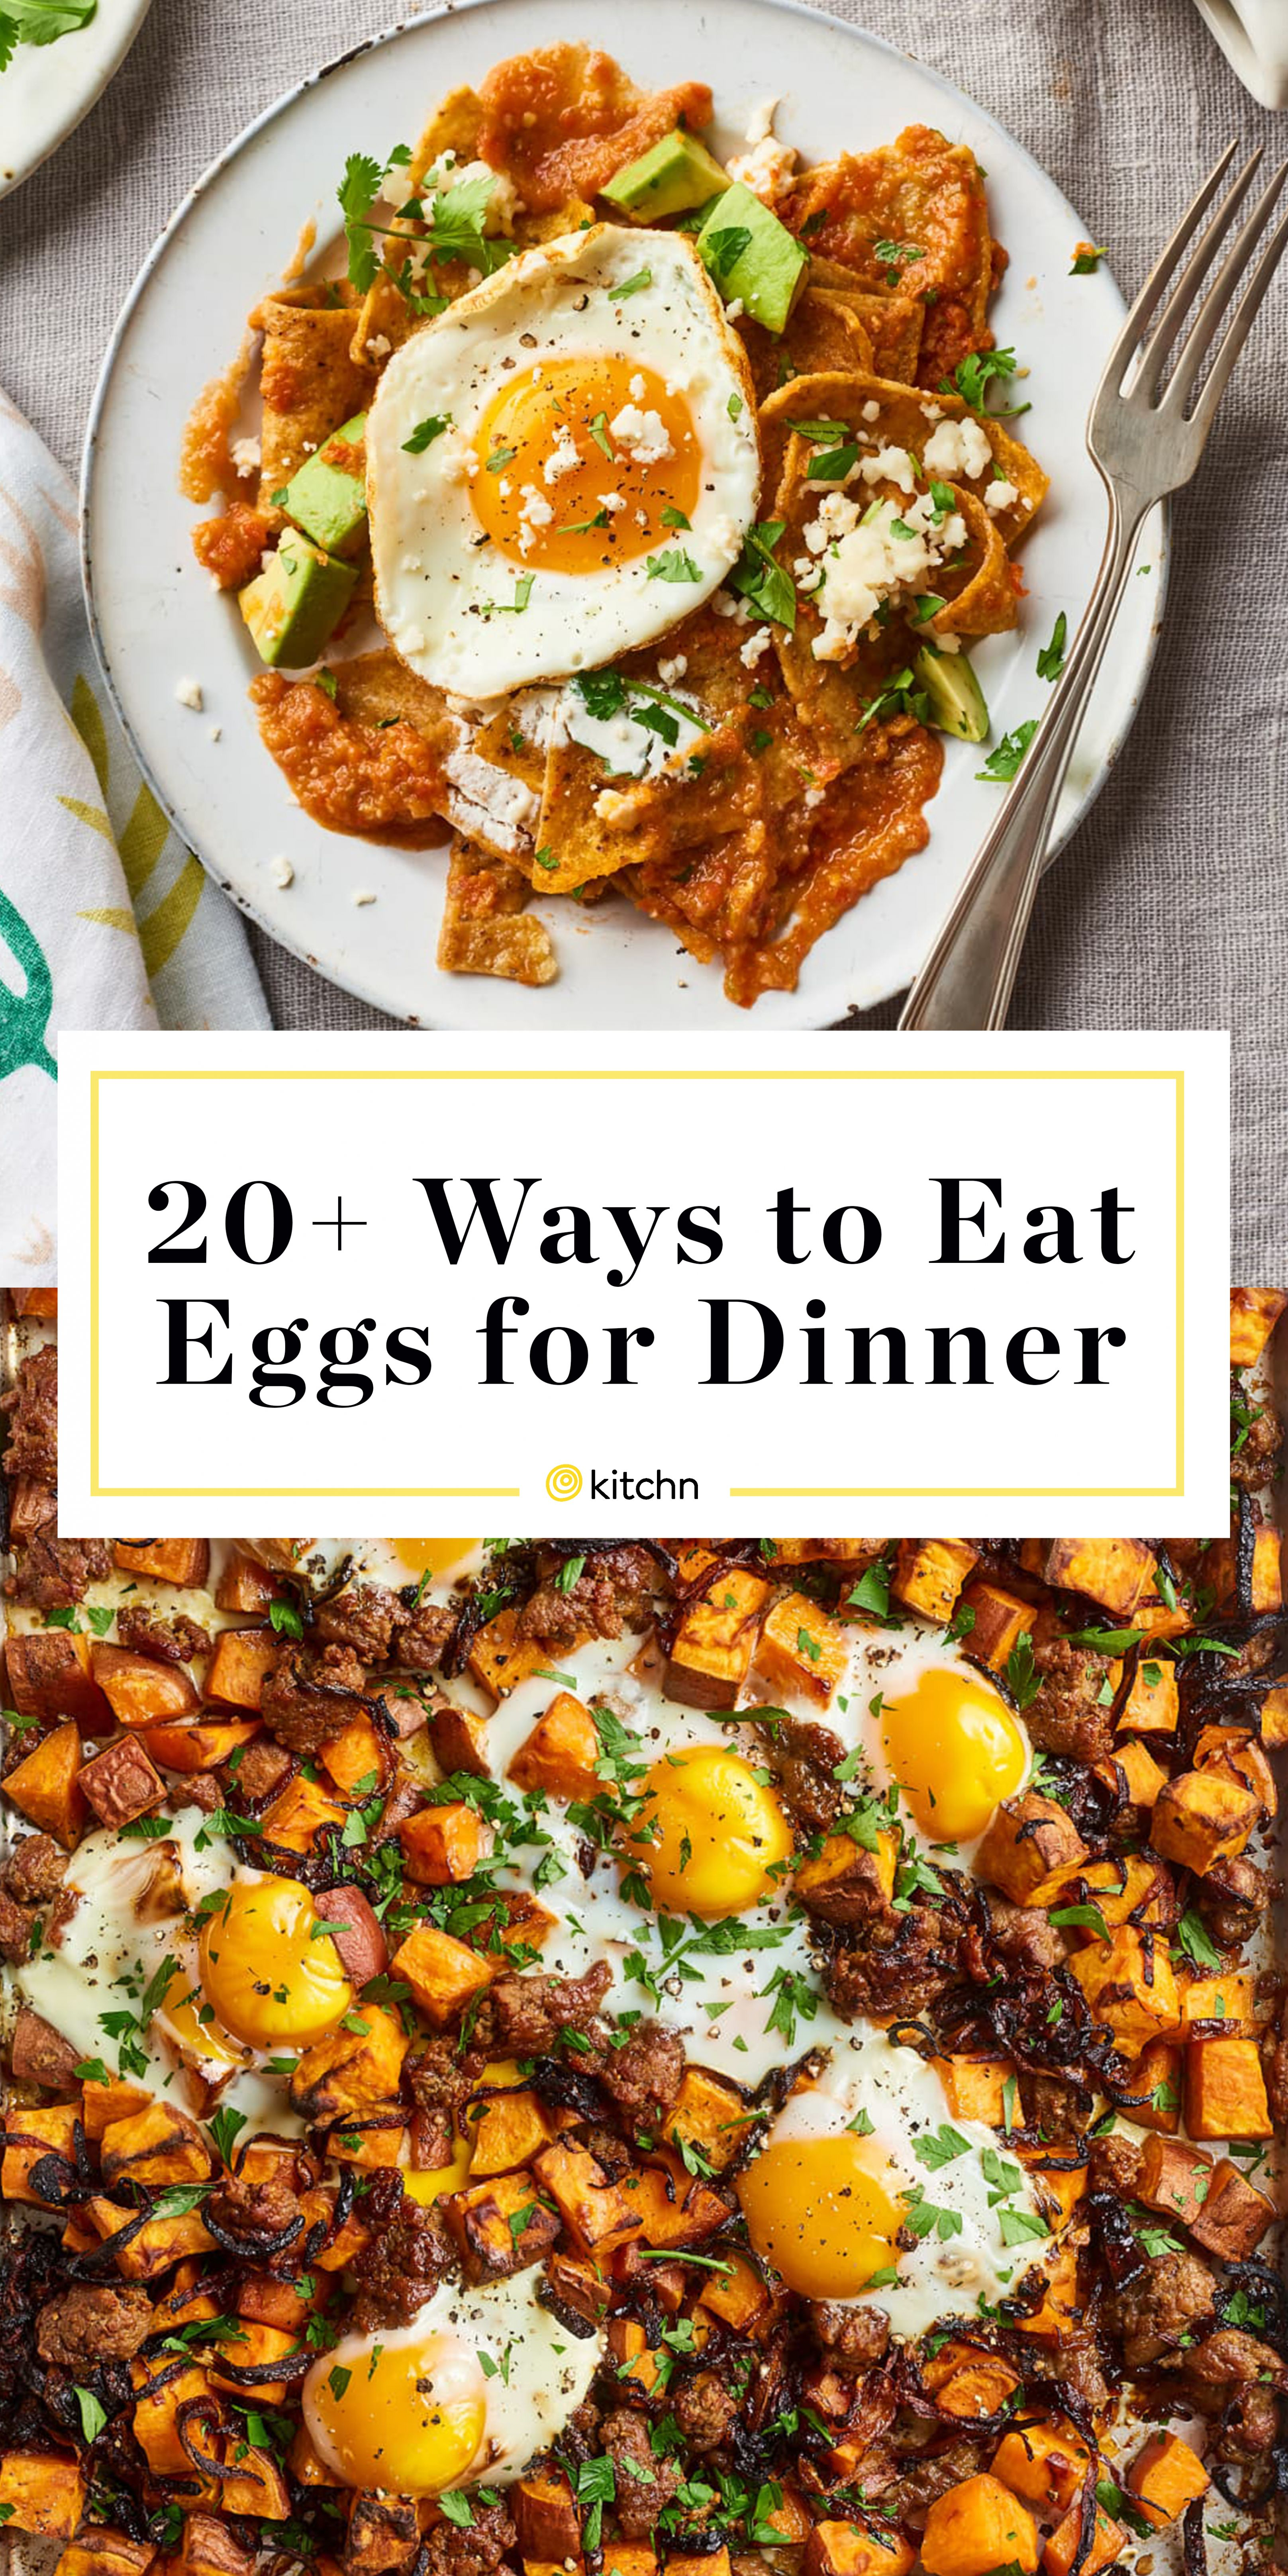 10 Delicious Ways to Eat Eggs for Dinner | Kitchn